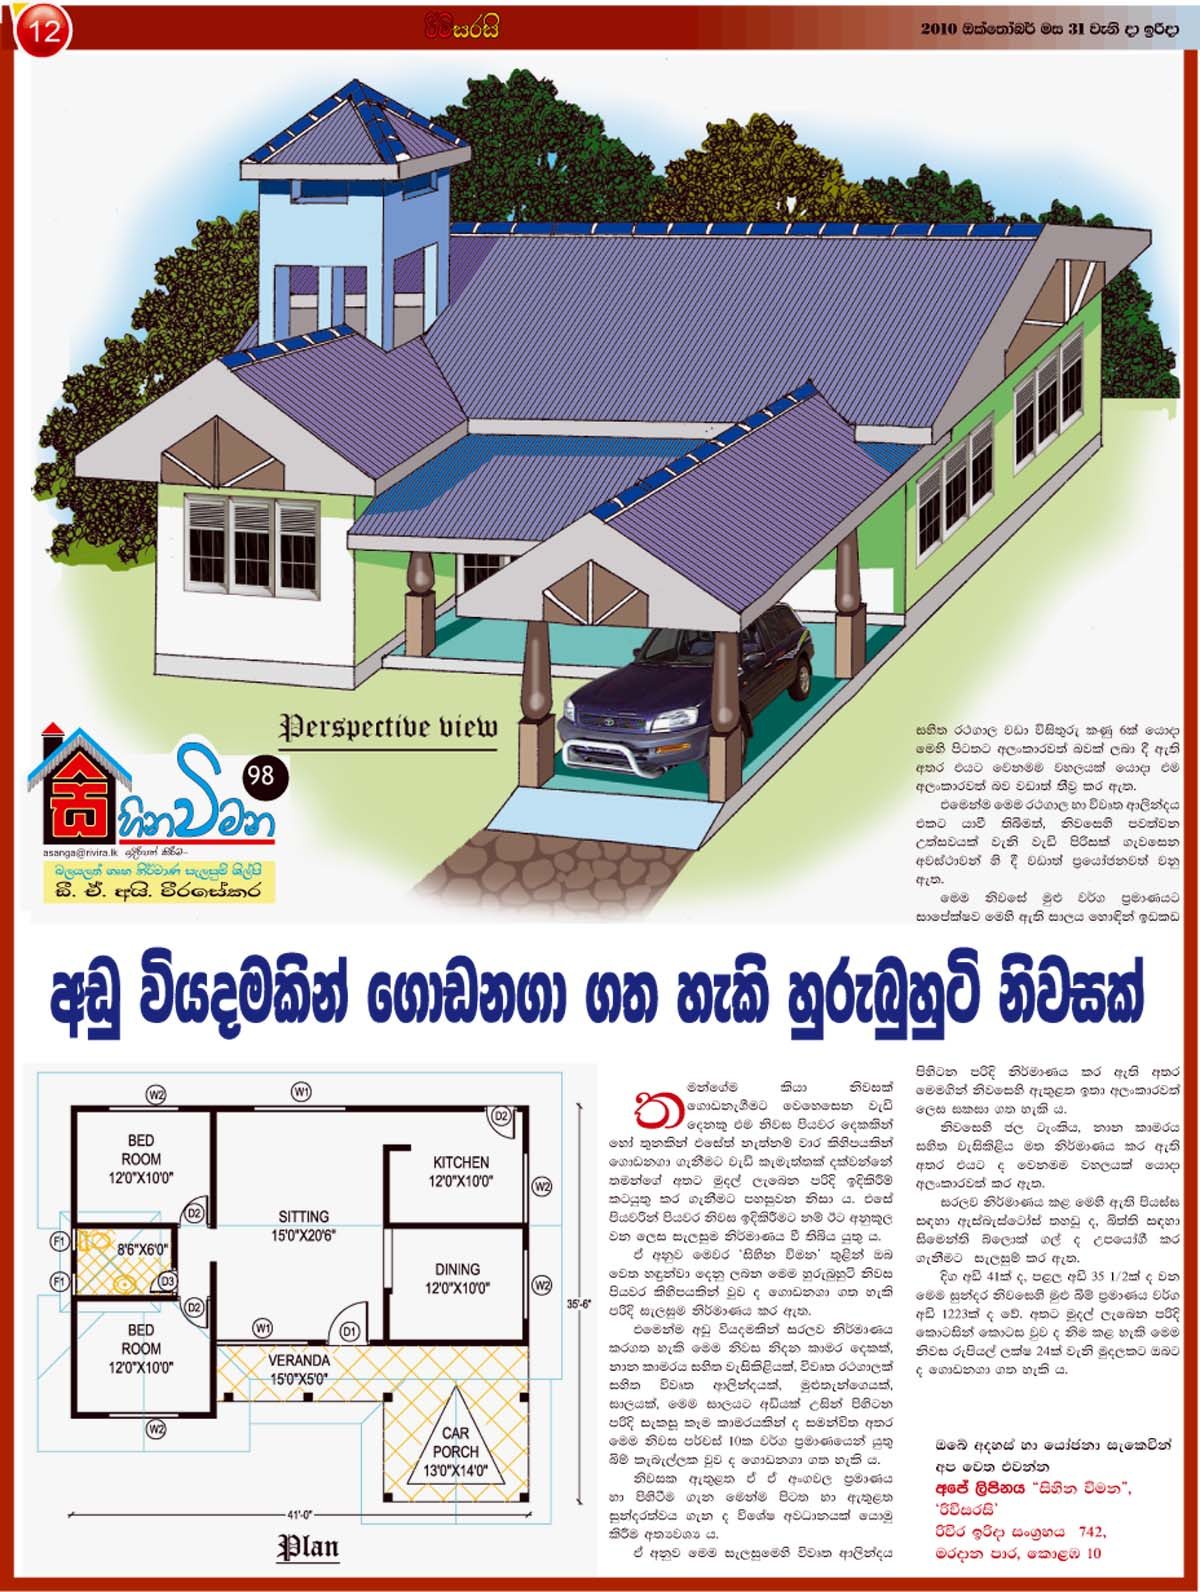 rs15 - 19+ Small House Modern Box Type House Design In Sri Lanka Pictures